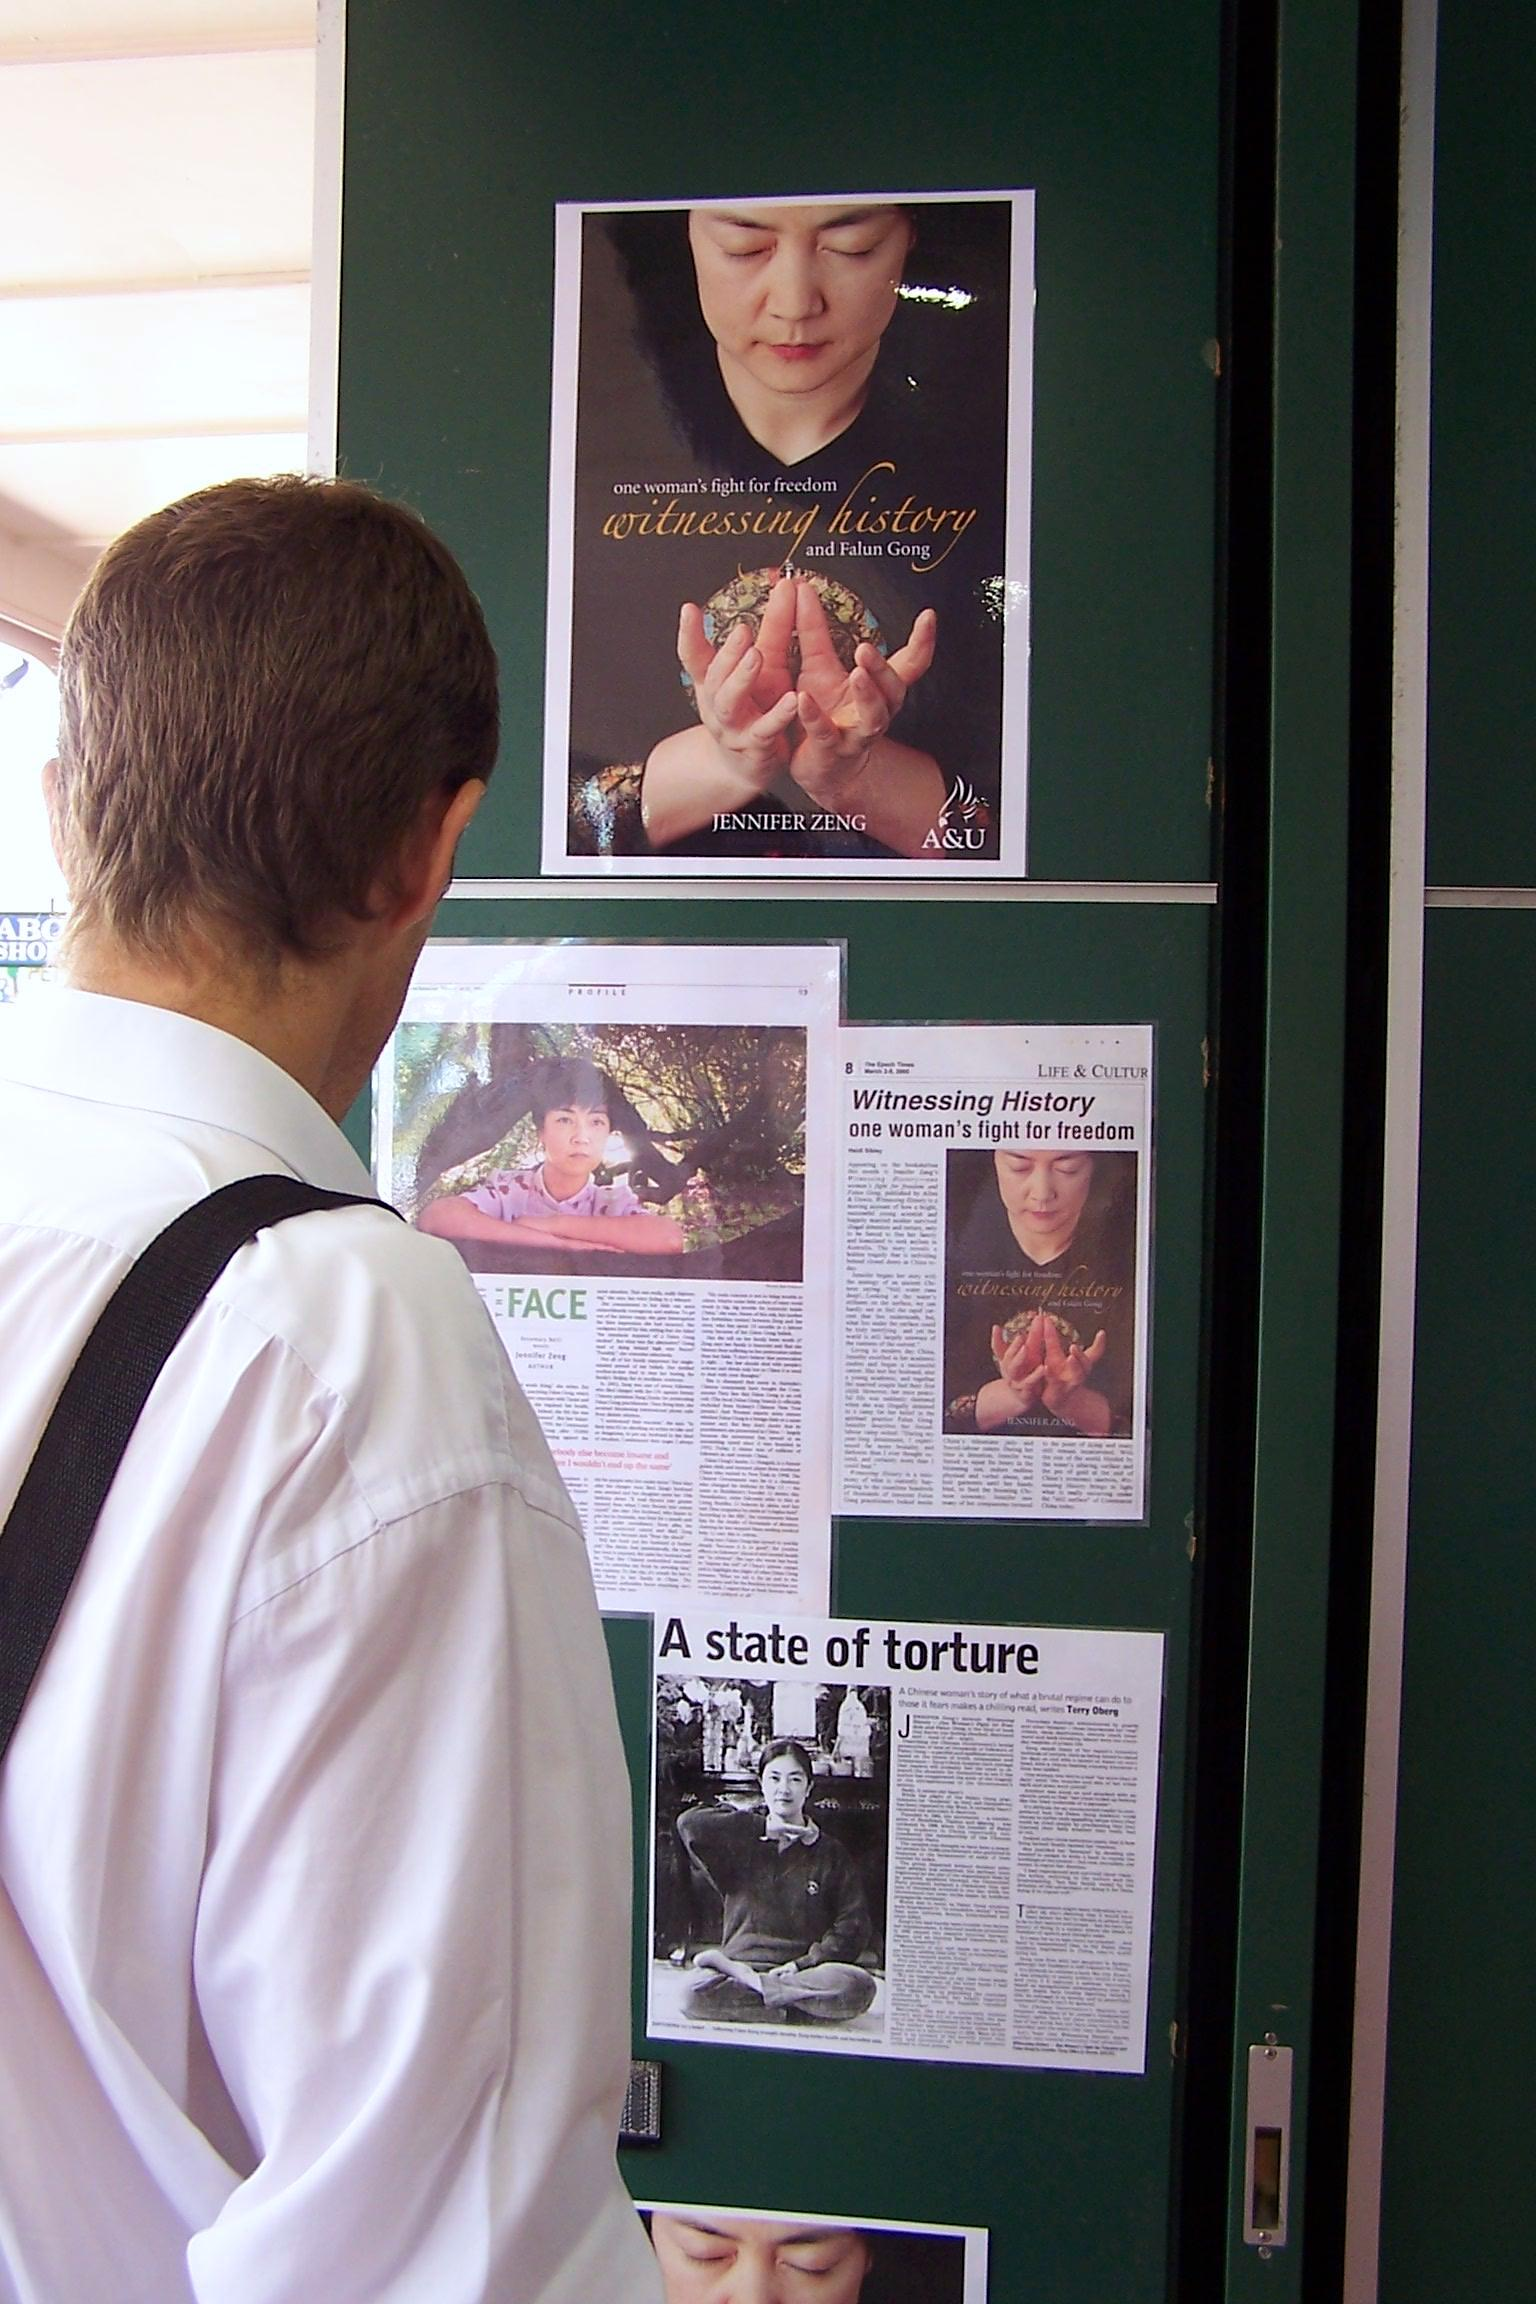 A reader reading media coverage of Jennifer's book at a bookstore in Gold Coast, QLD, Australia in May, 2005